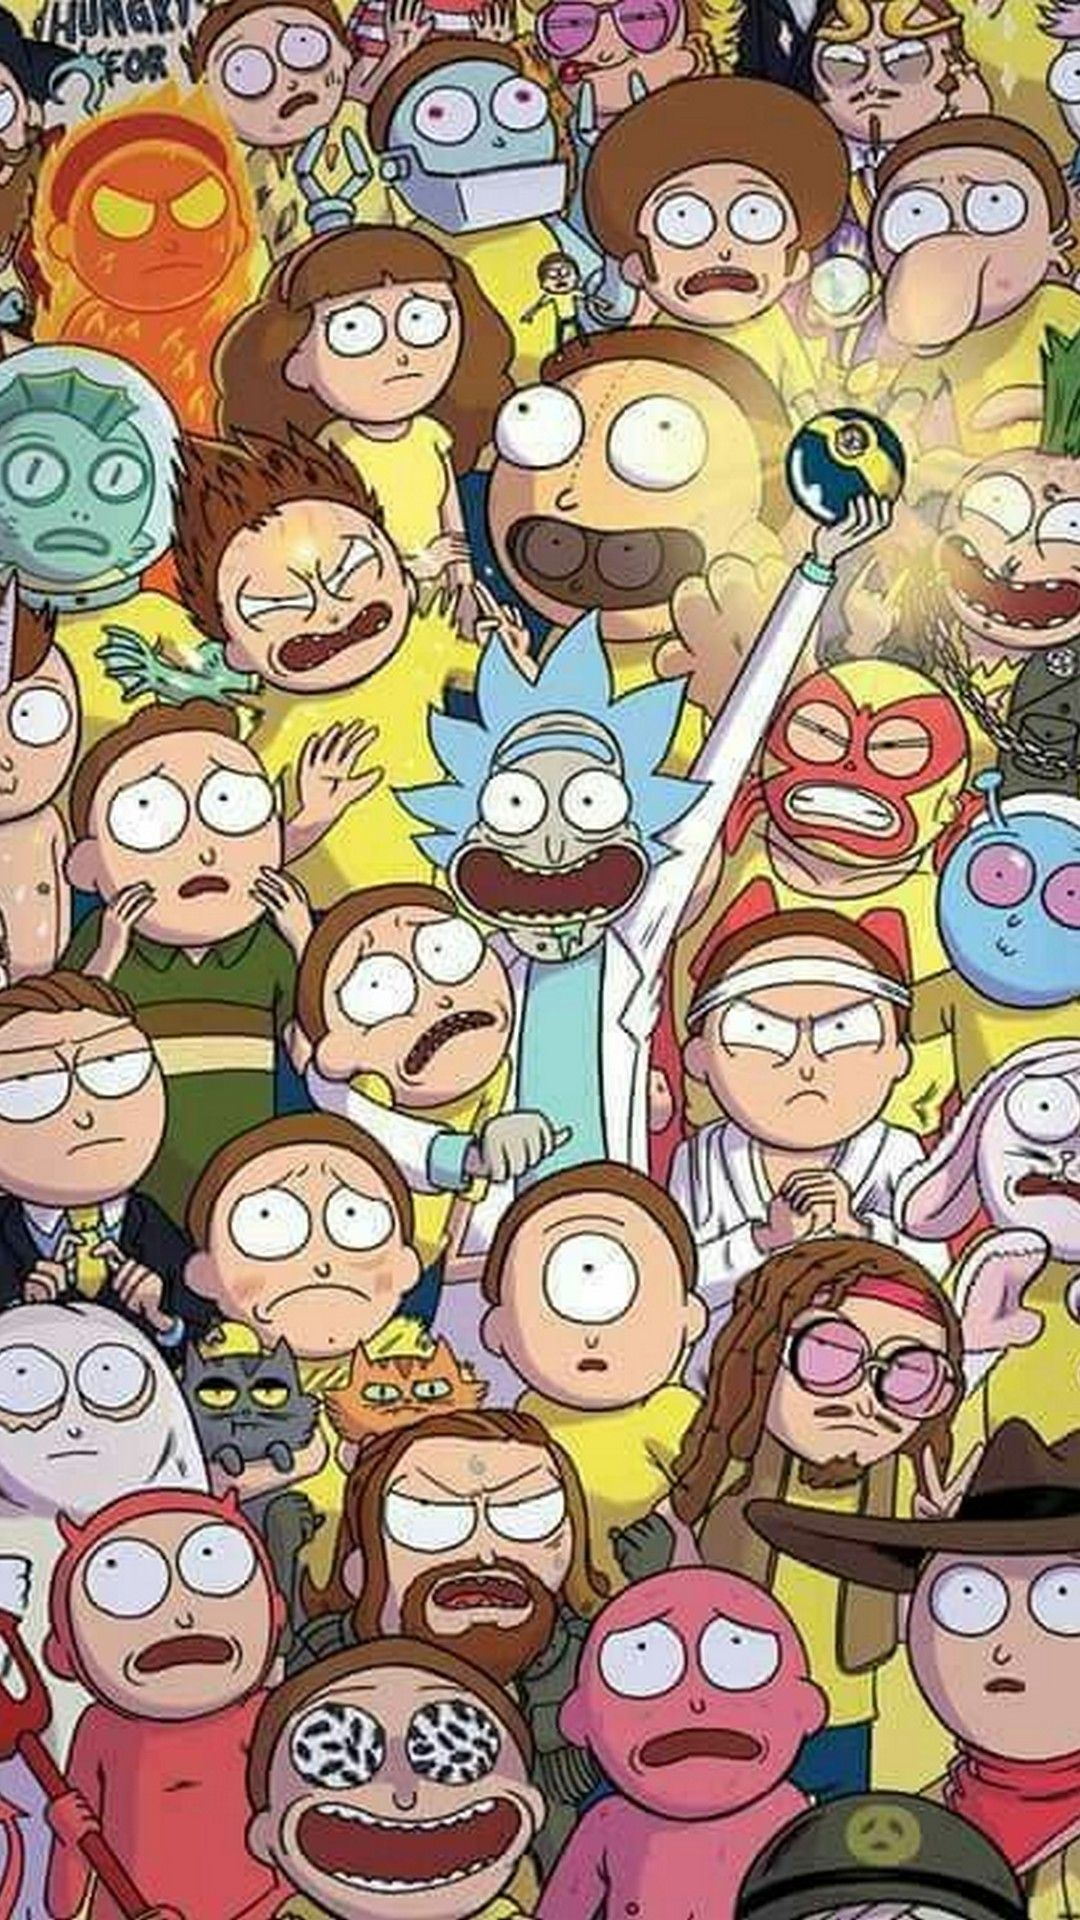 Wallpaper Iphone Cartoon Wallpapers Iphone In 2020 Rick And Morty Poster Cartoon Wallpaper Rick I Morty